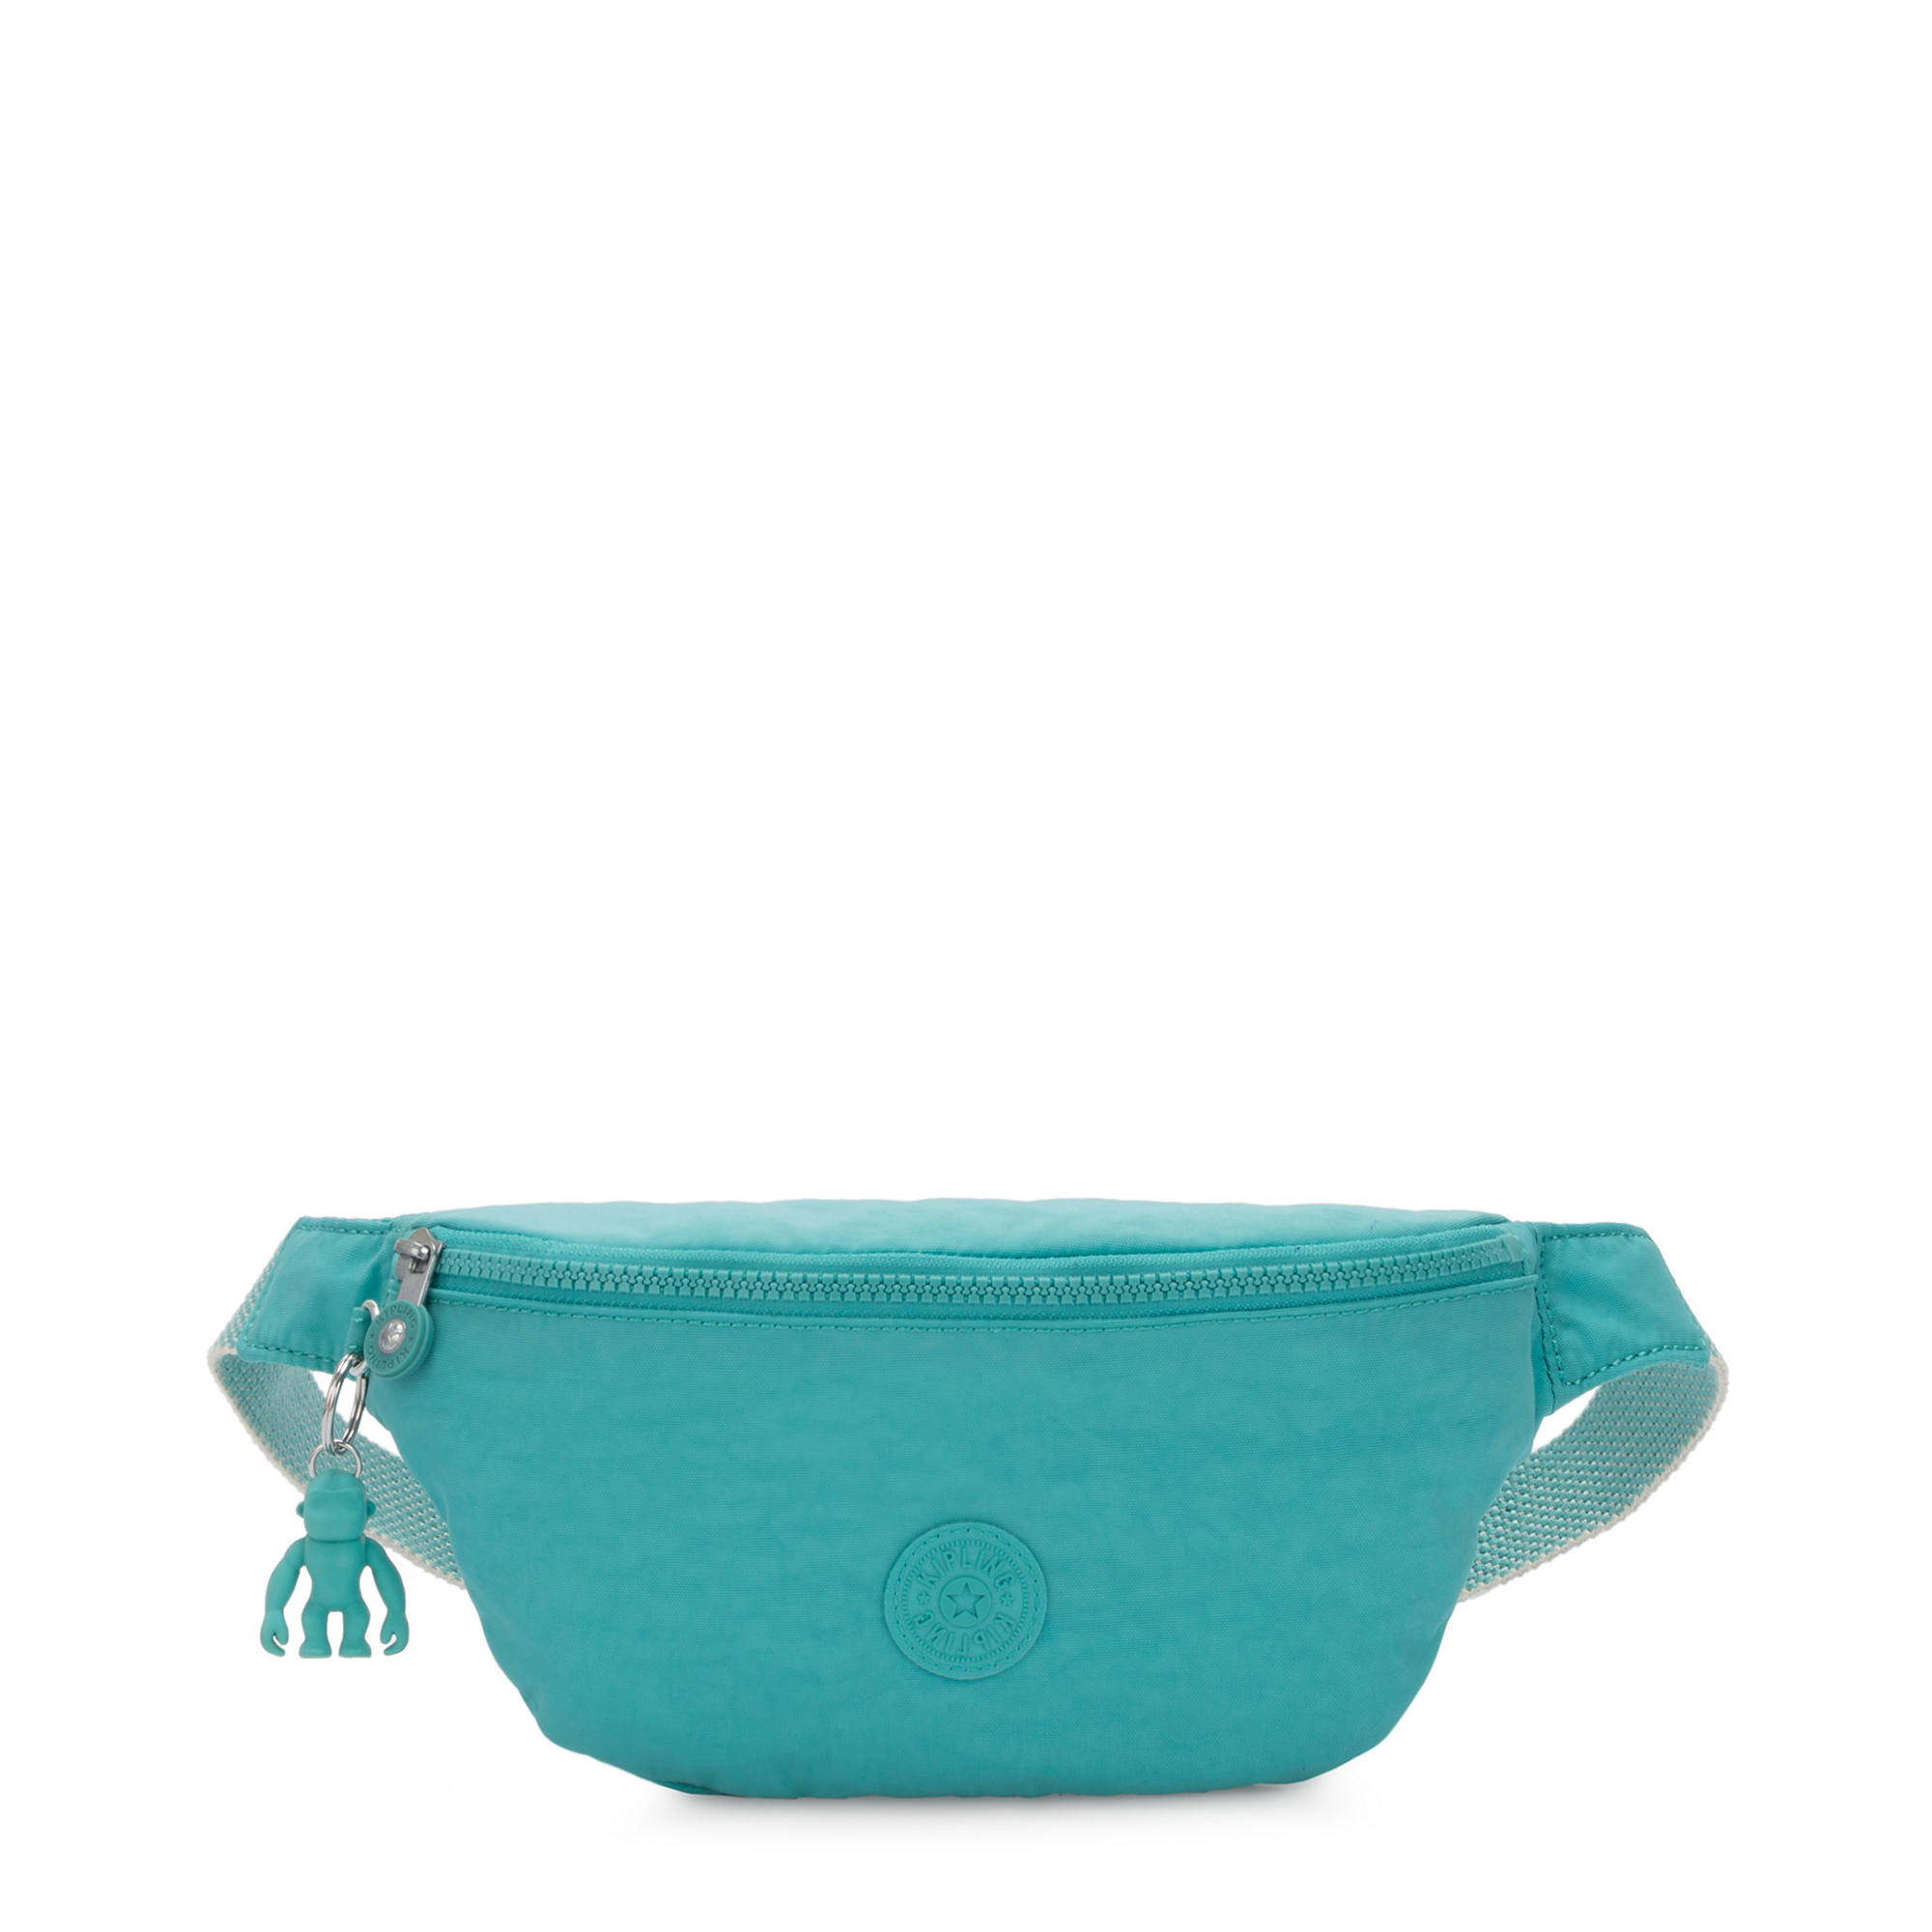 Fresh Waist Pack,Seaglass Blue,large-zoomed